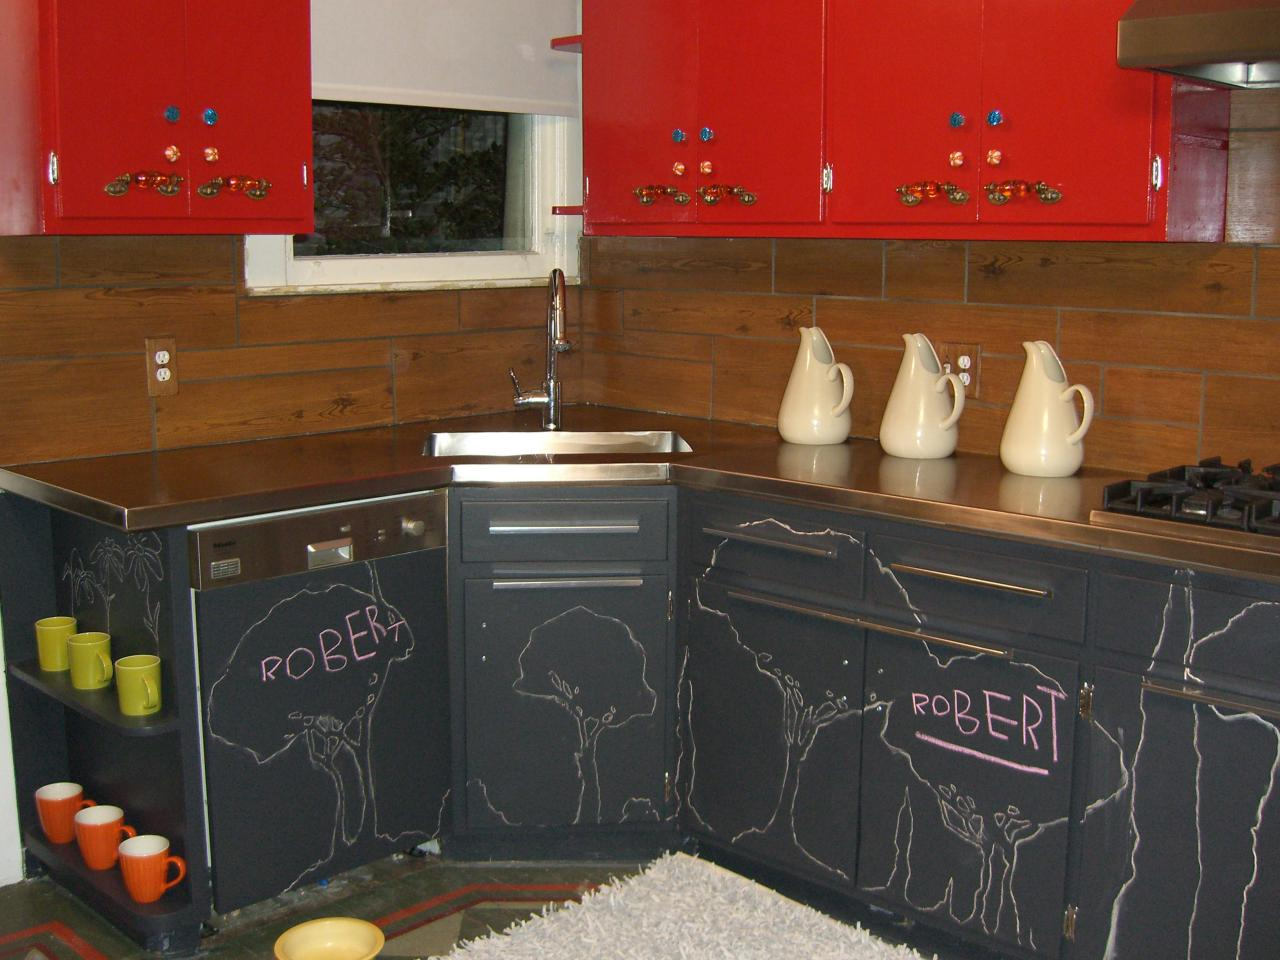 Cabinets With Chalkboard Paint Kitchen Cabinets With Chalkboard Paint